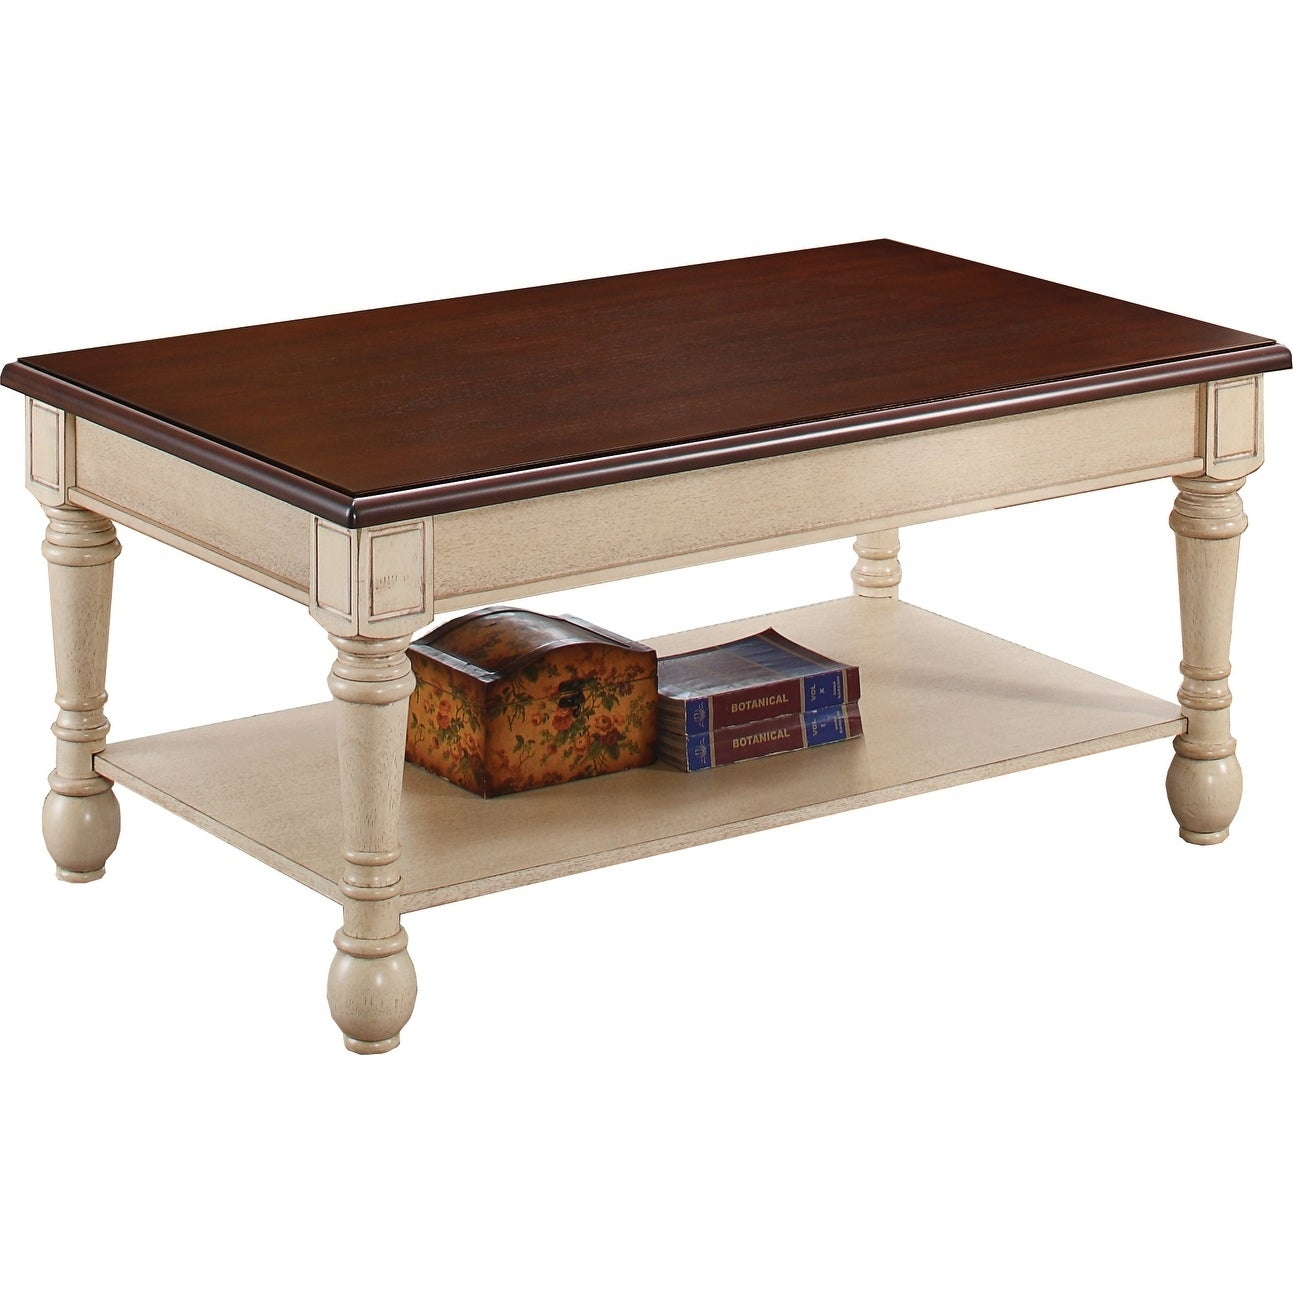 Transitional Dark Brown And Antique White Coffee Table 43 75 X 25 50 20